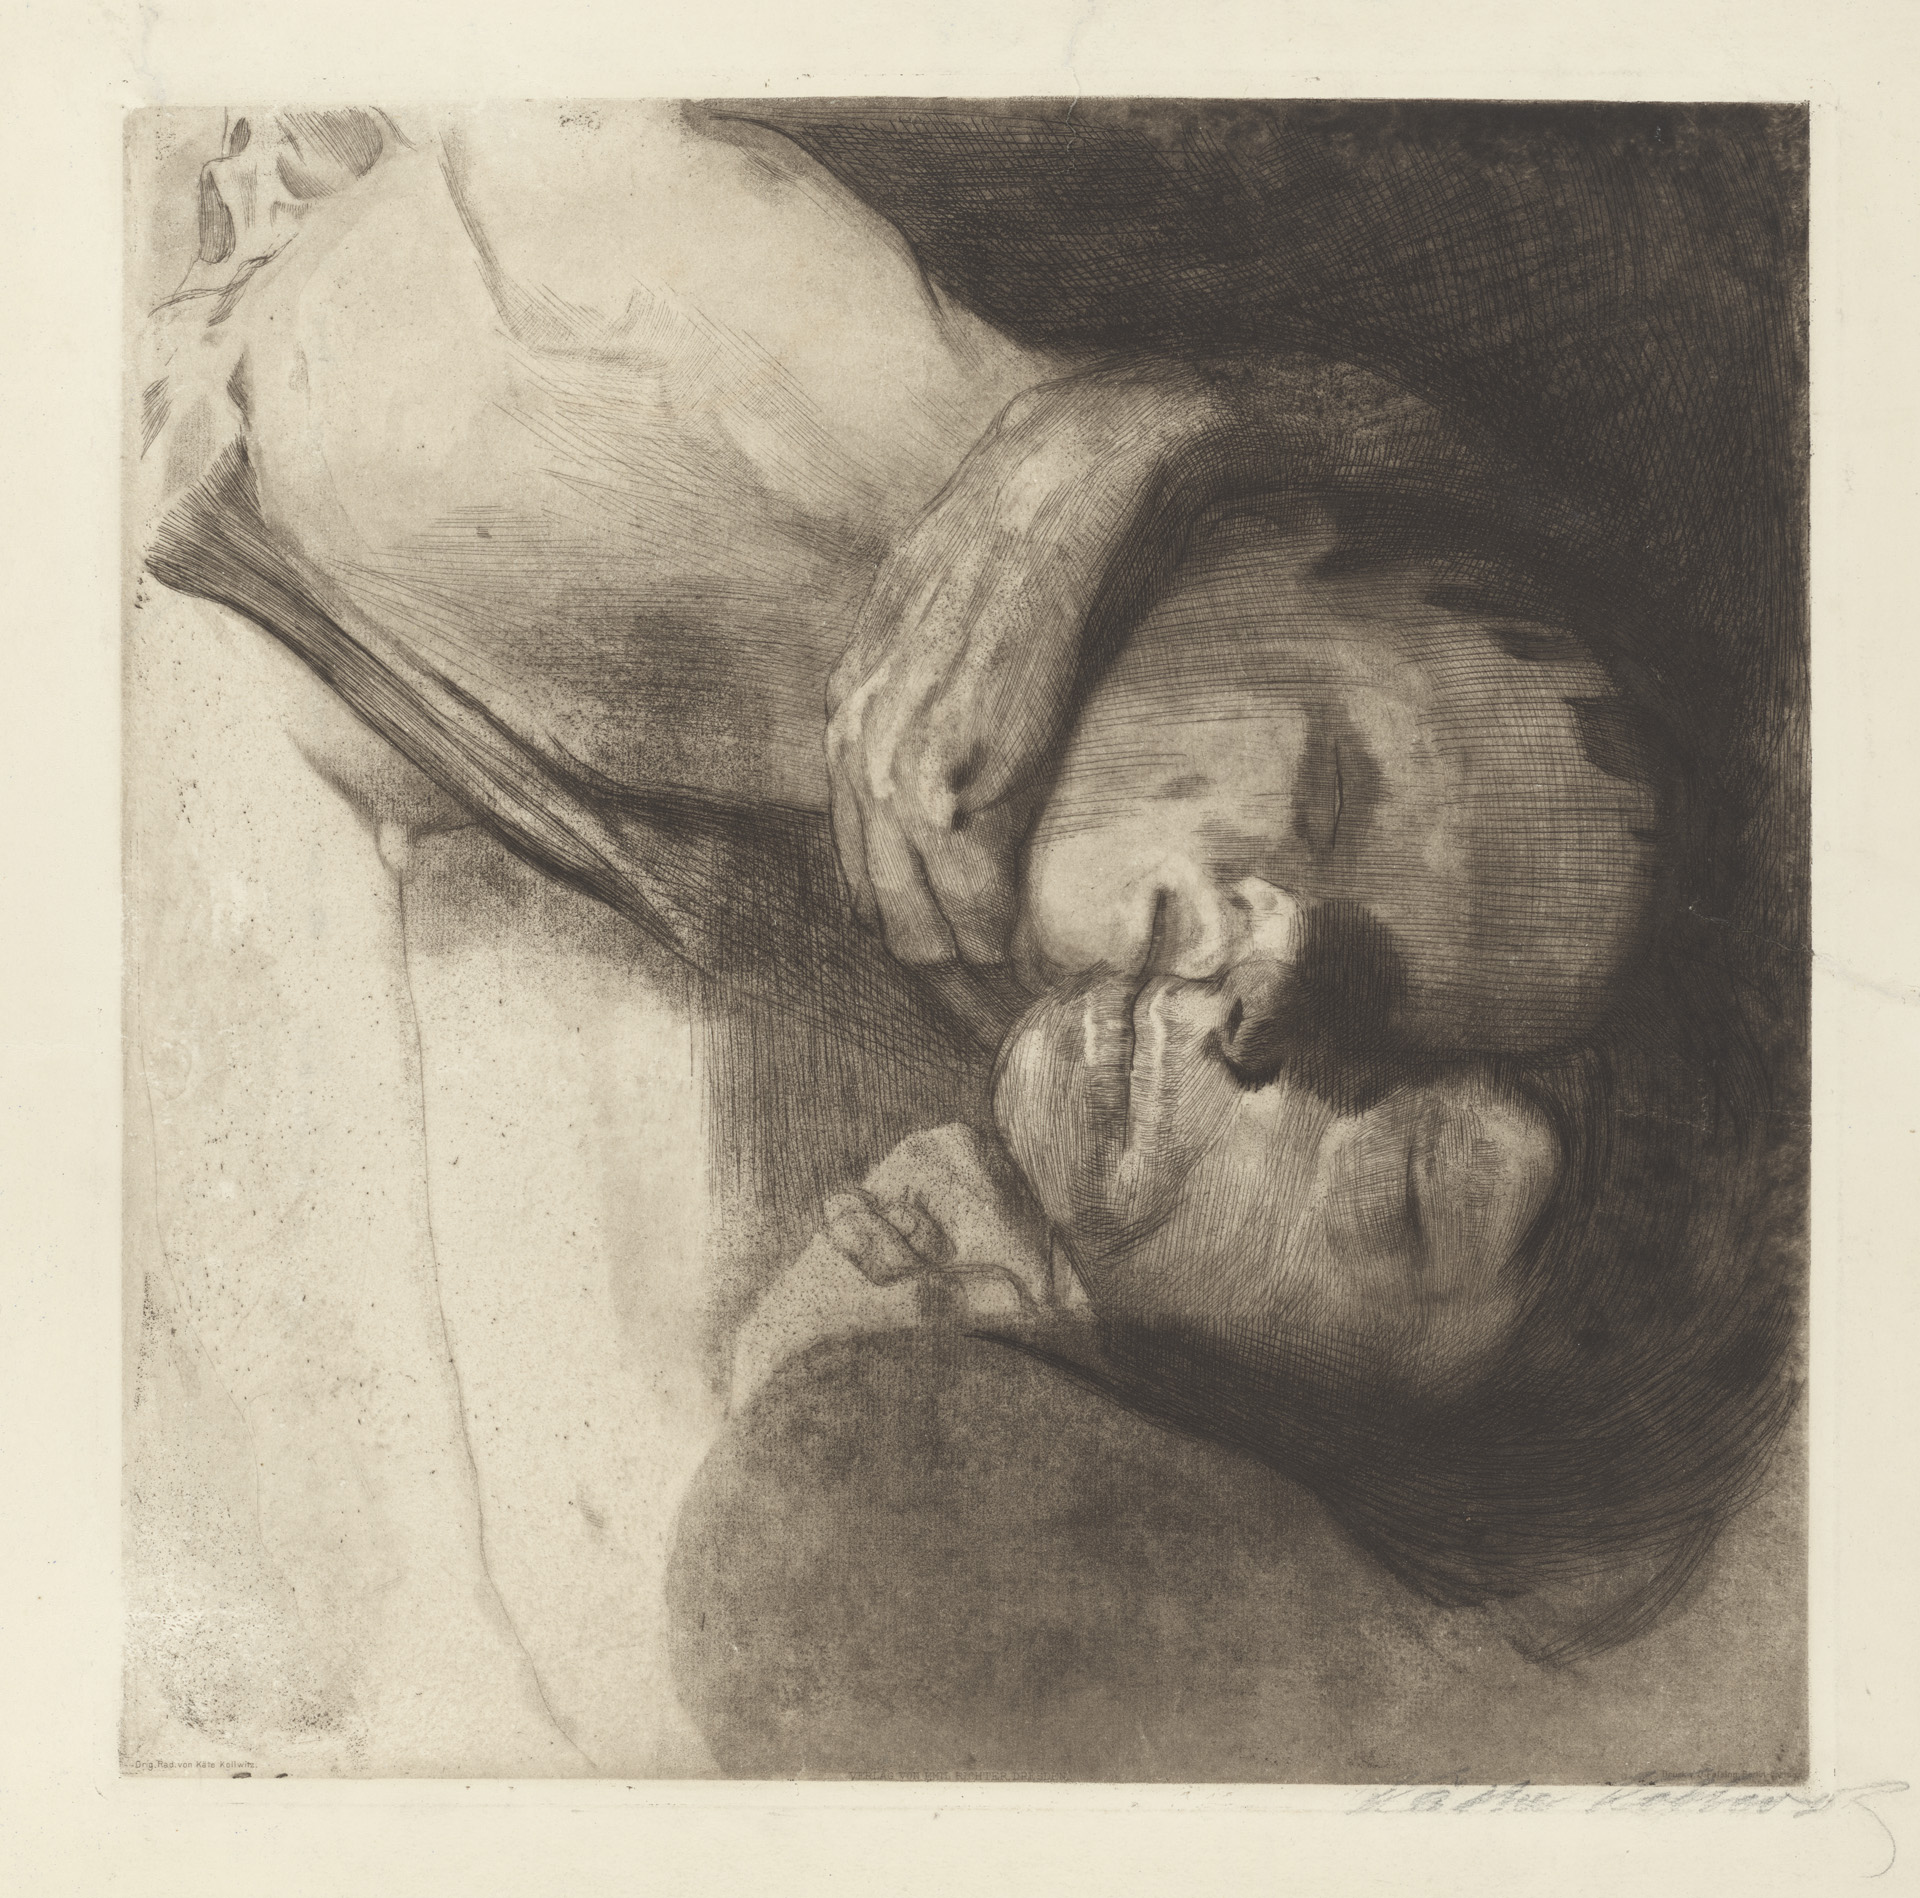 Käthe Kollwitz, Death, Woman and Child, 1910, line etching, drypoint, sandpaper and vernis mou with imprint of laid paper and Ziegler's transfer paper, Kn 108 XIII, Cologne Kollwitz Collection © Käthe Kollwitz Museum Köln